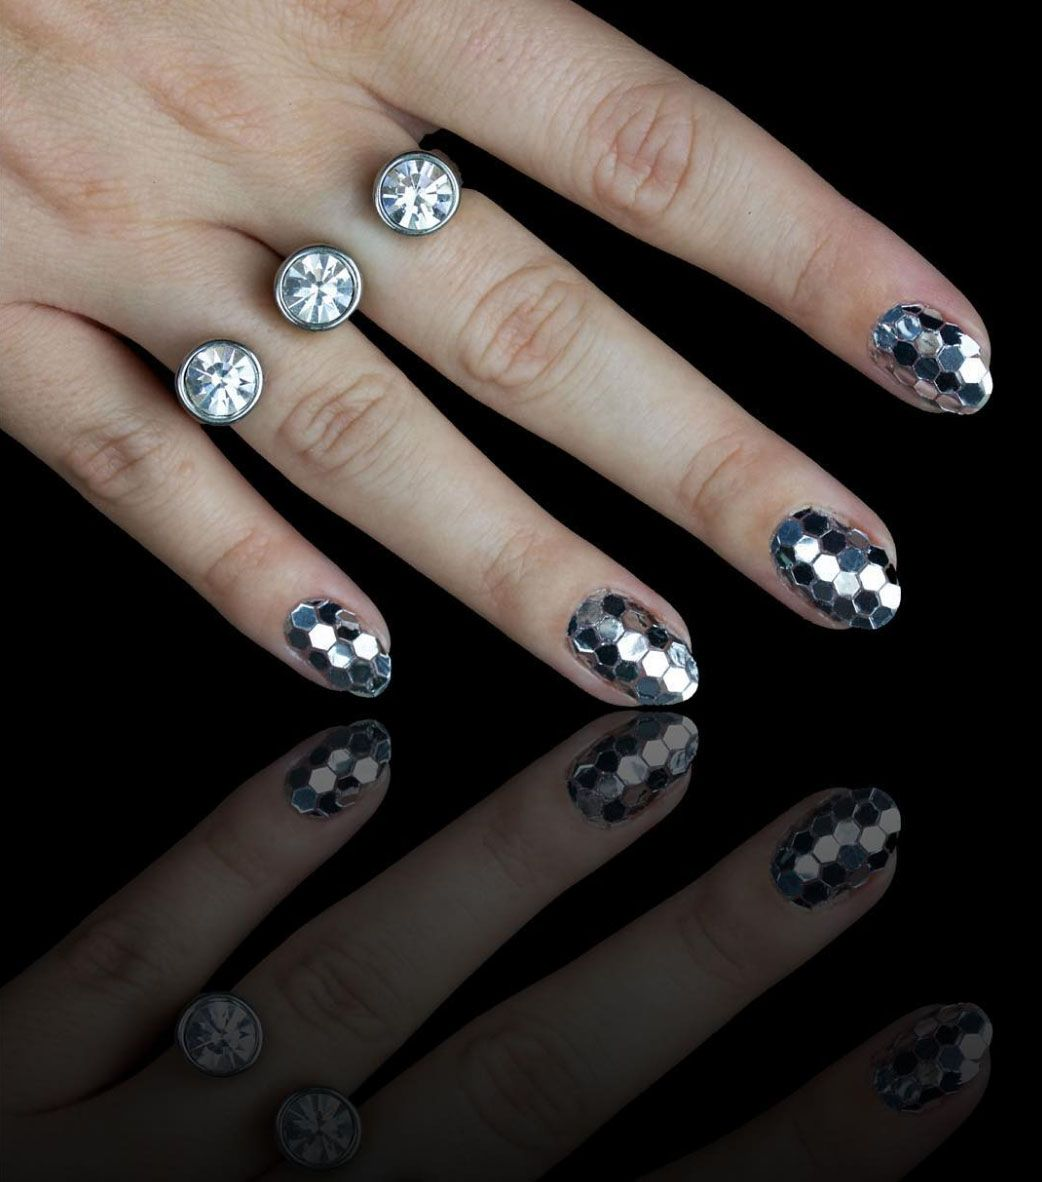 15 Best New Years Eve Nail Art Ideas Nail Designs For A New Years Manicure